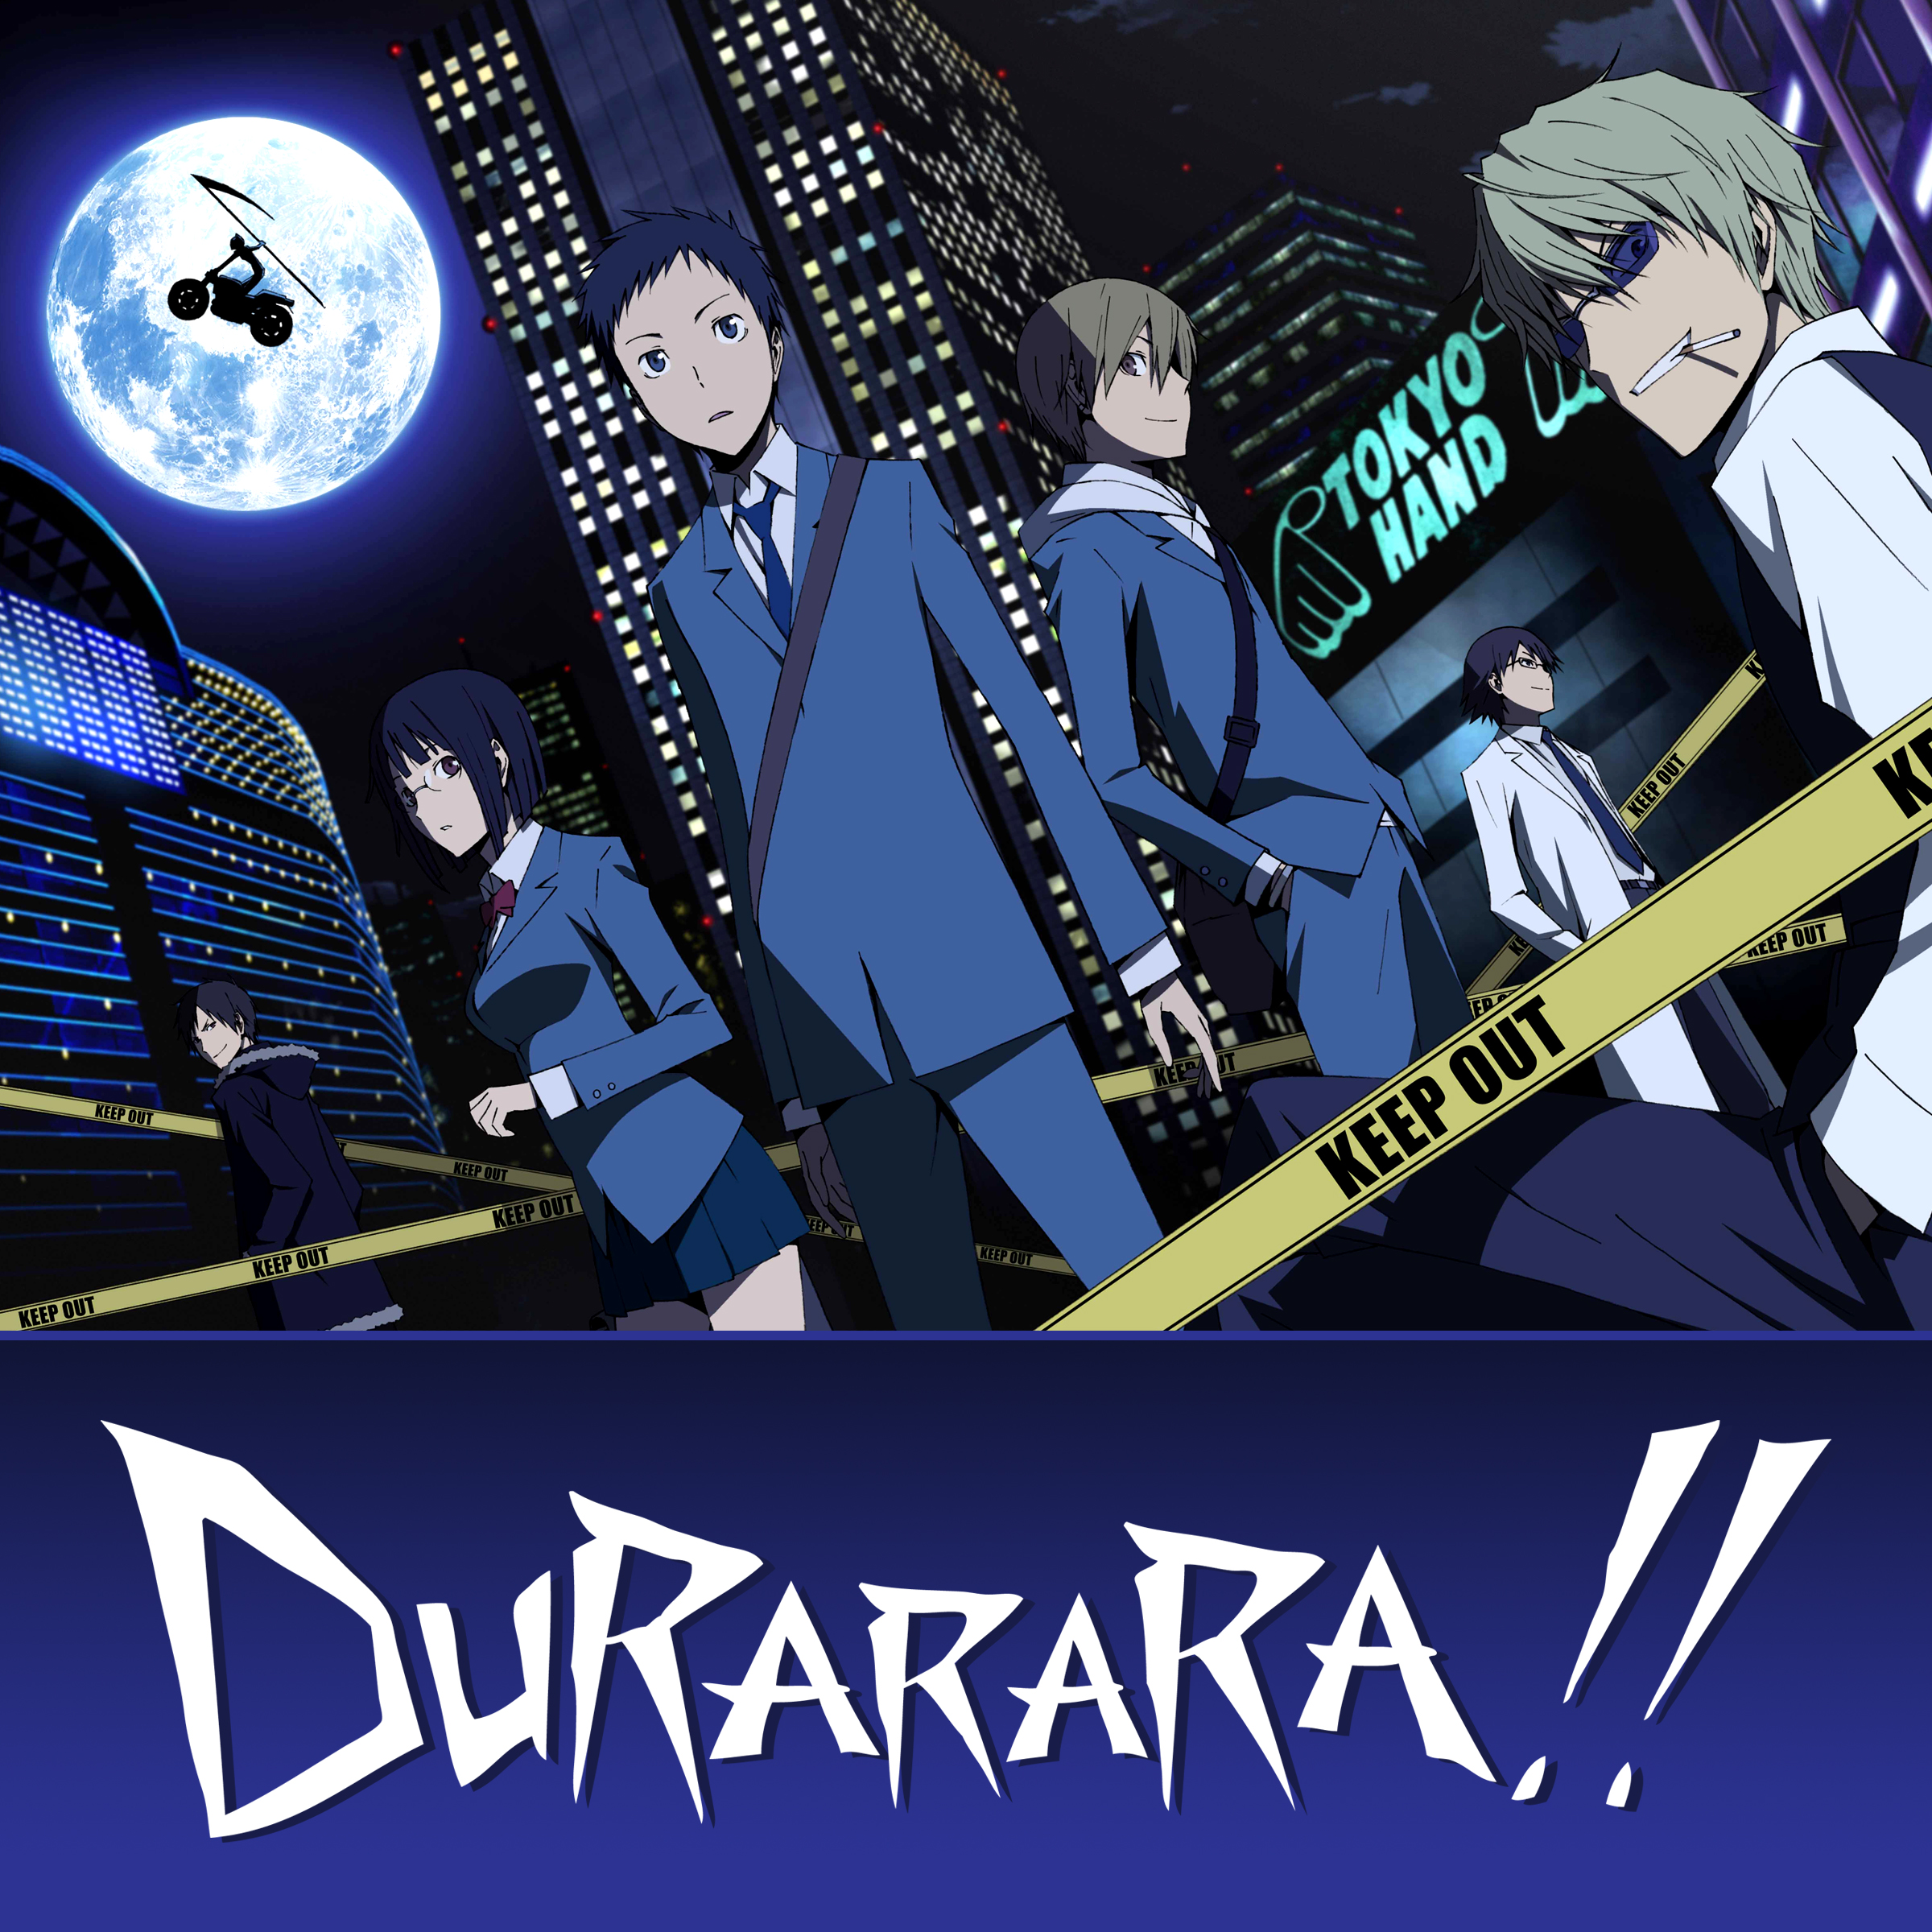 Durarara!! - New Video Digital - Cinedigm Entertainment